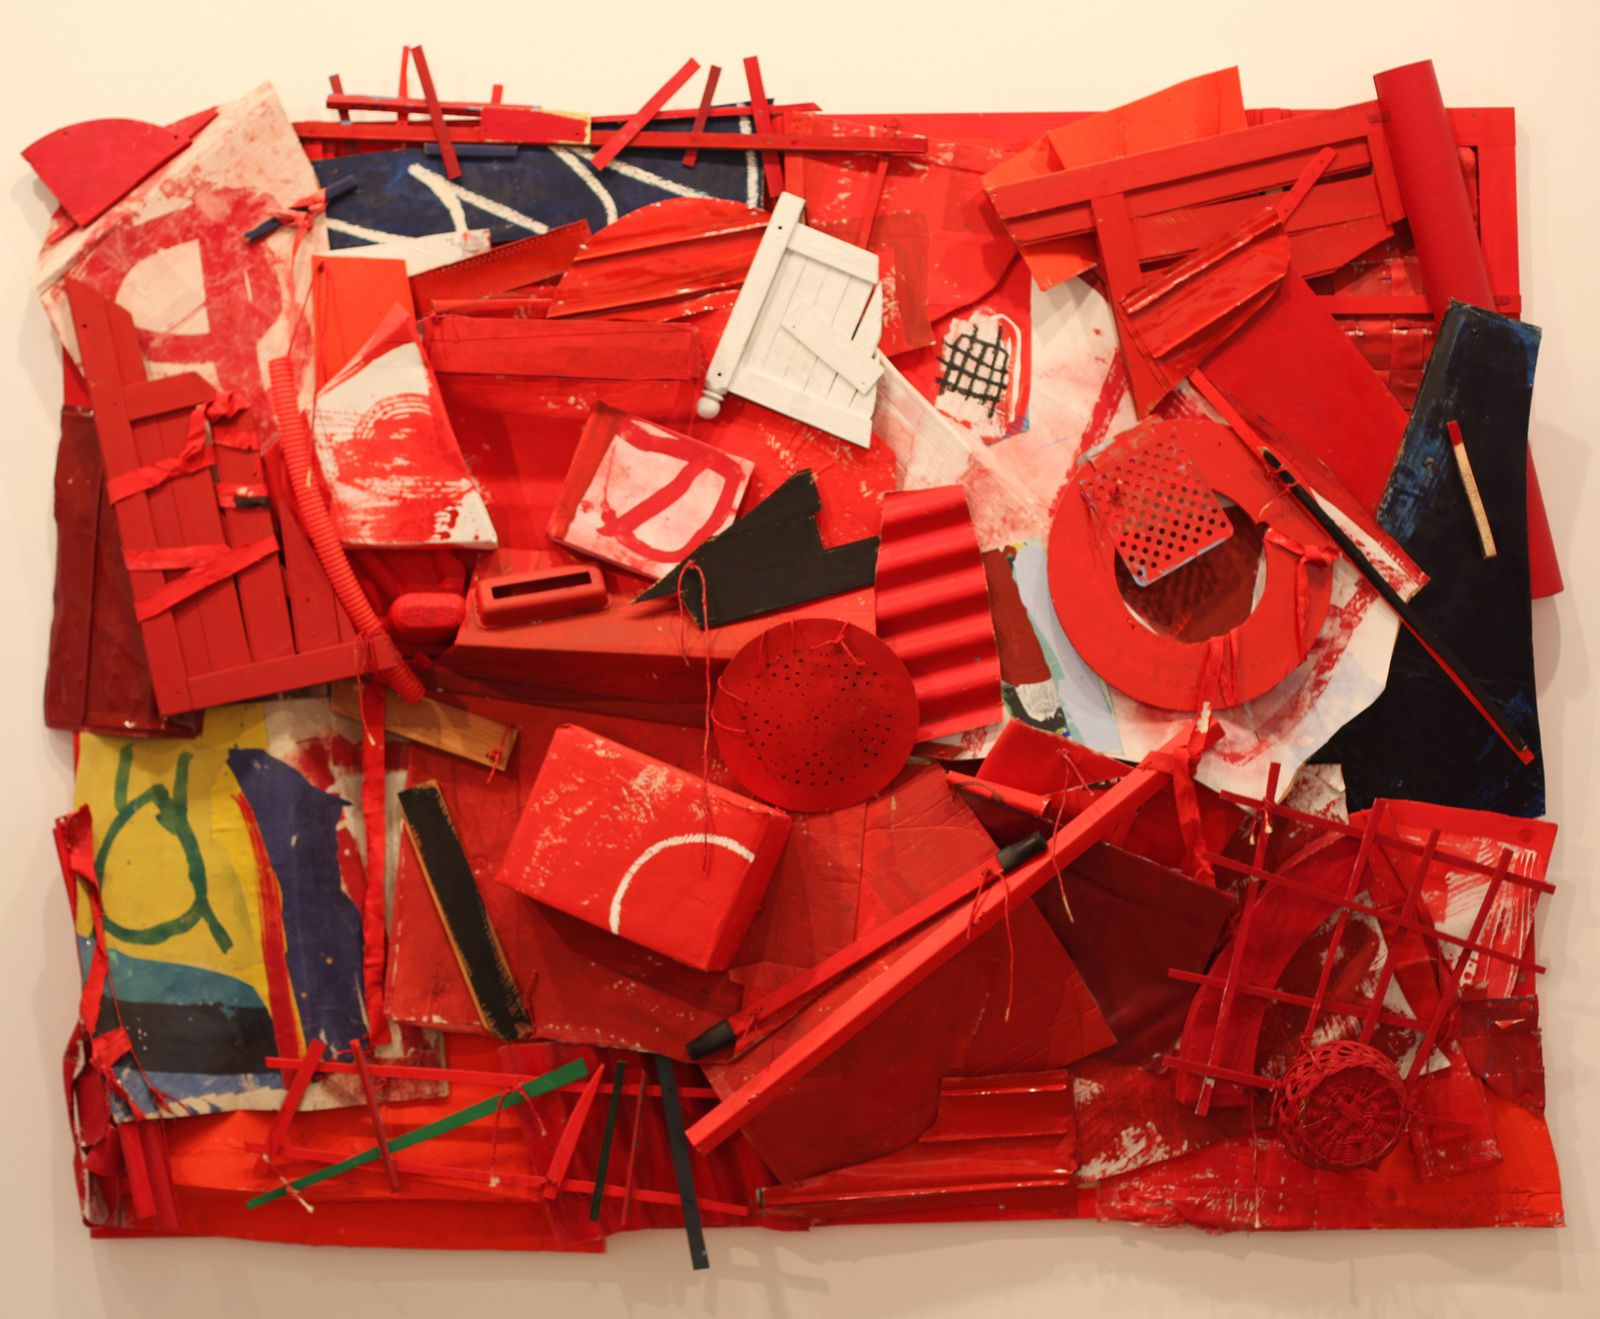 """Lieu-dit (rouge)"", 2012 de Jan Voss - Courtesy Galeire Lelong Paris © Photo Éric Simon"